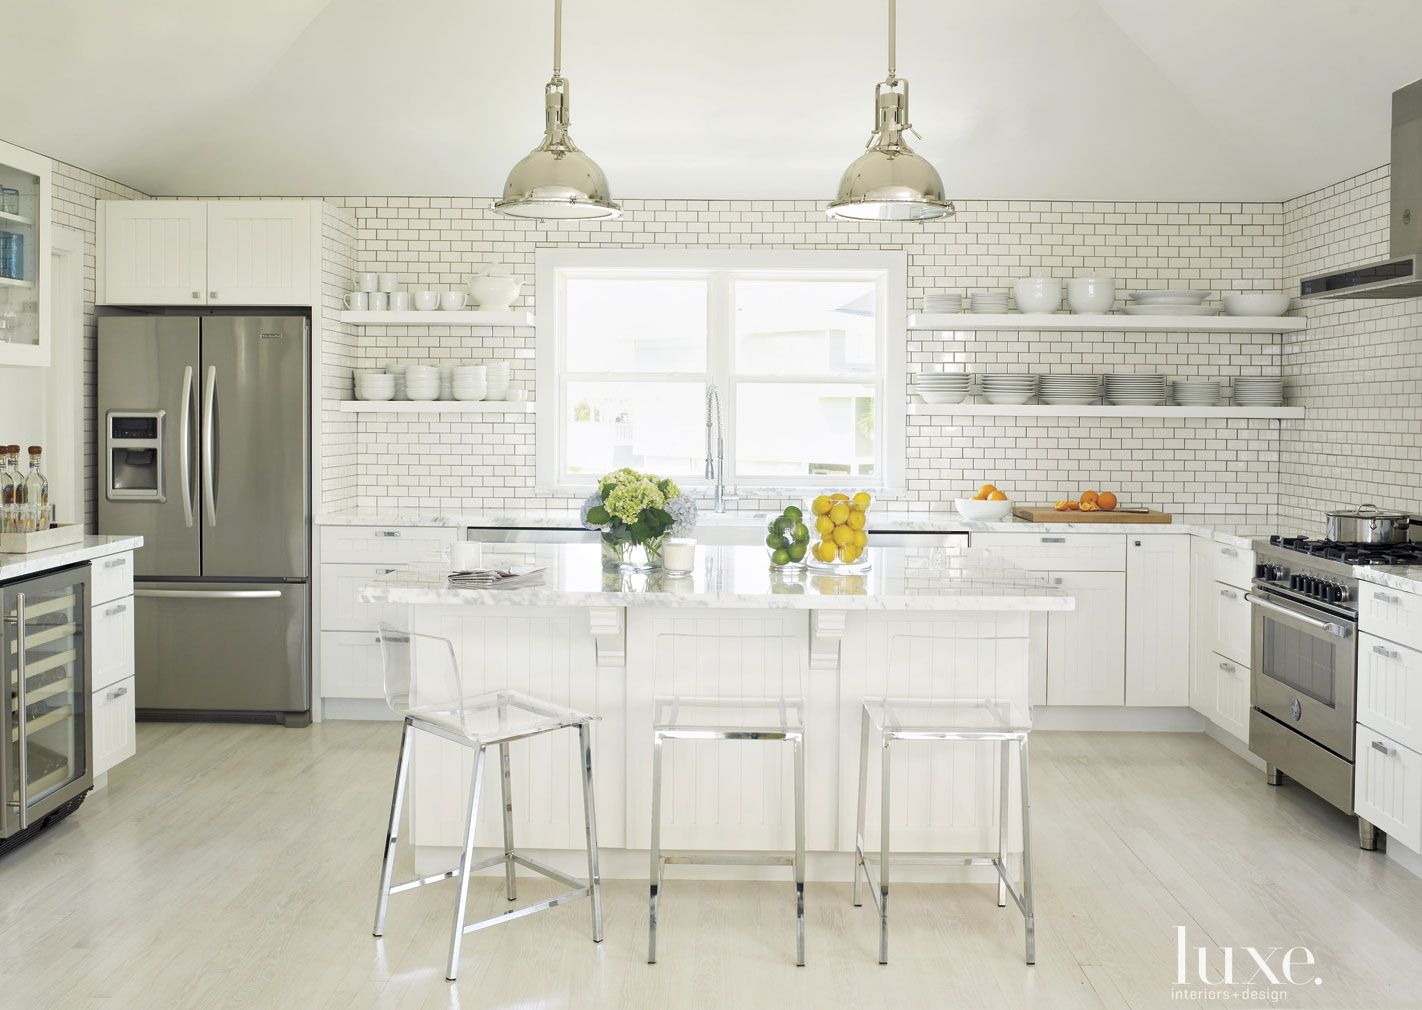 Contemporary White Kitchen with White Subway Tile Backsplash and Lucite Chairs